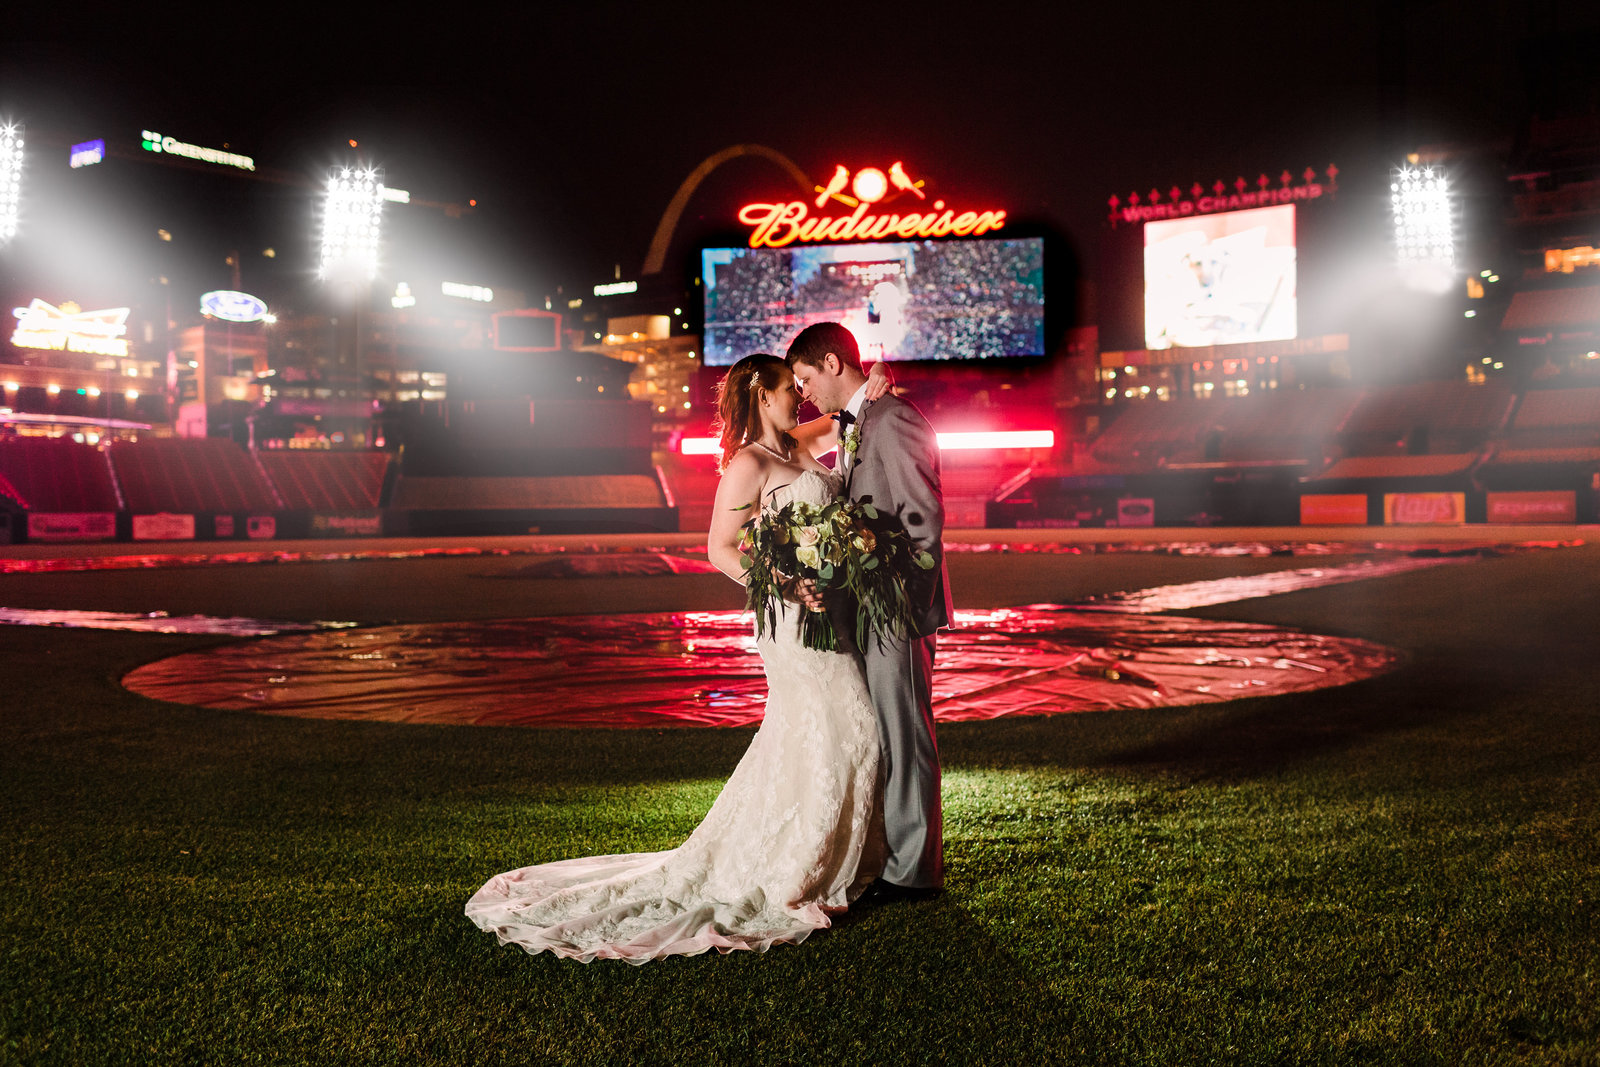 Bride and Groom, Kailyn and Adam, face each other to kiss on the field of Busch Stadium under the stadium lights.